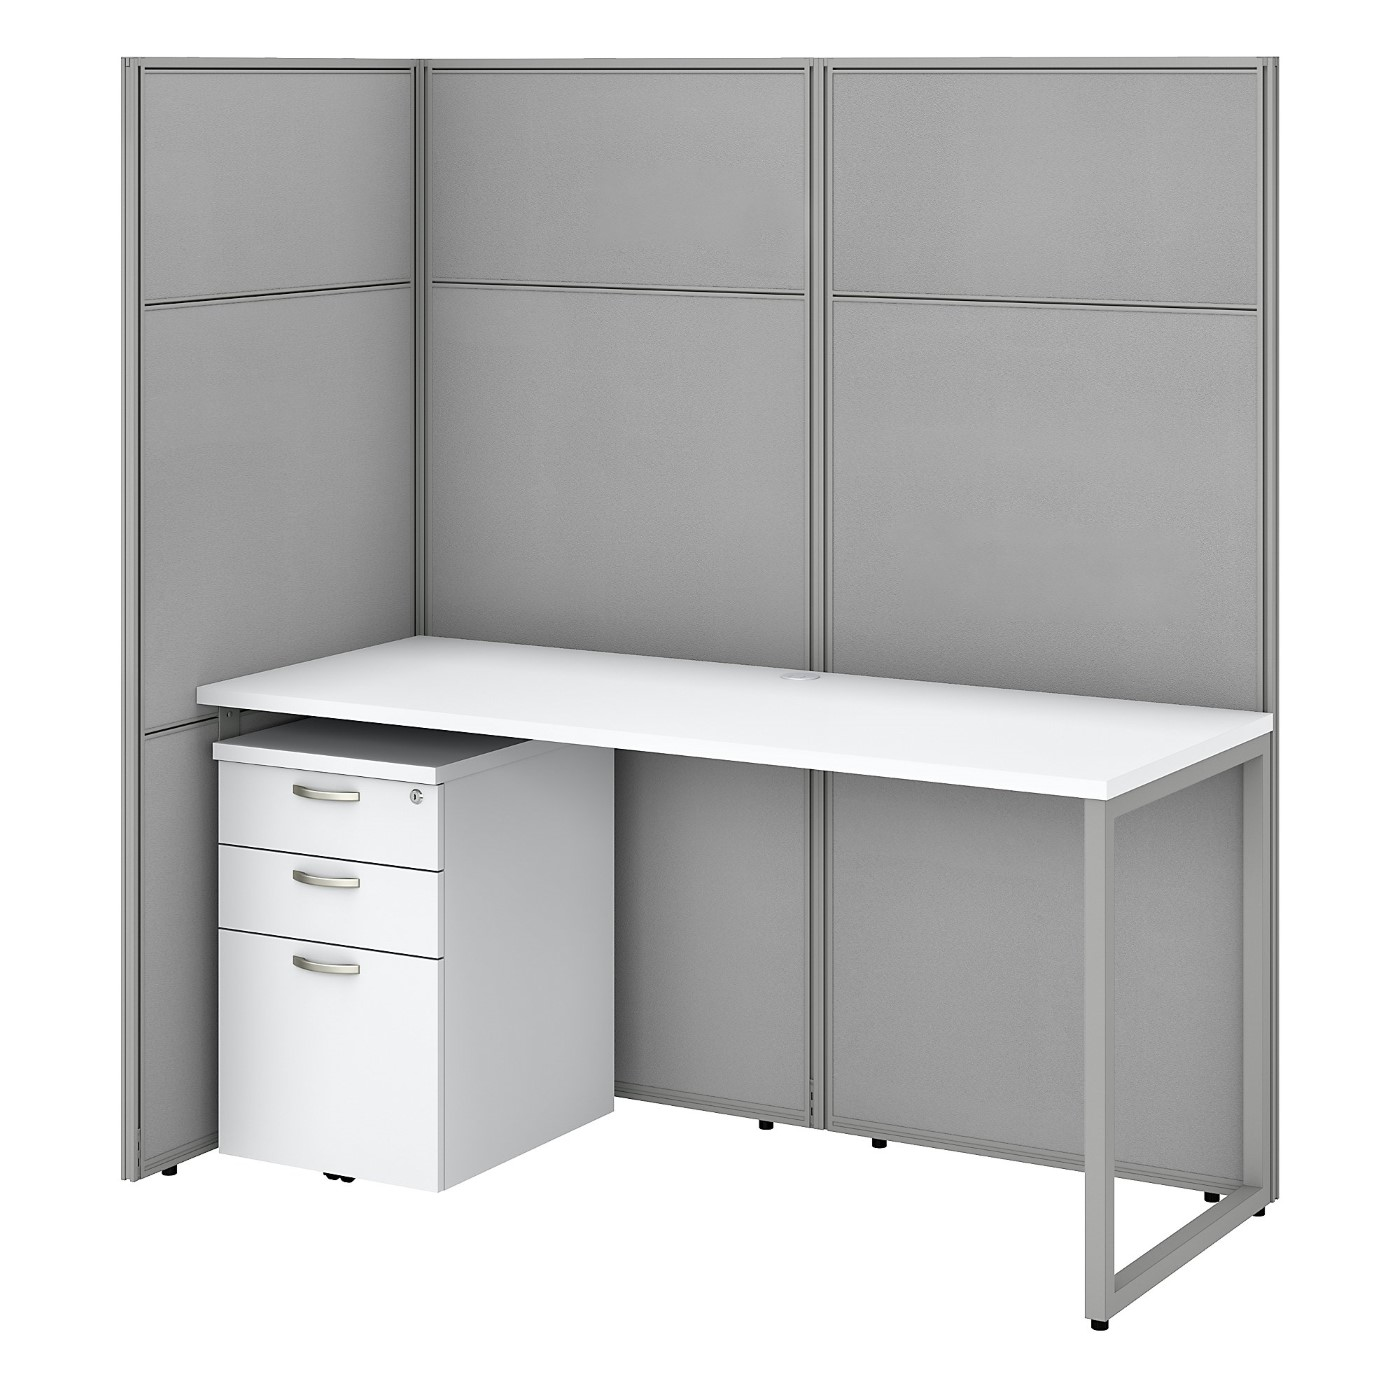 BUSH BUSINESS FURNITURE EASY OFFICE 60W CUBICLE DESK WITH FILE CABINET AND 66H OPEN PANELS WORKSTATION. FREE SHIPPING SALE DEDUCT 10% MORE ENTER '10percent' IN COUPON CODE BOX WHILE CHECKING OUT. ENDS 5-31-20.